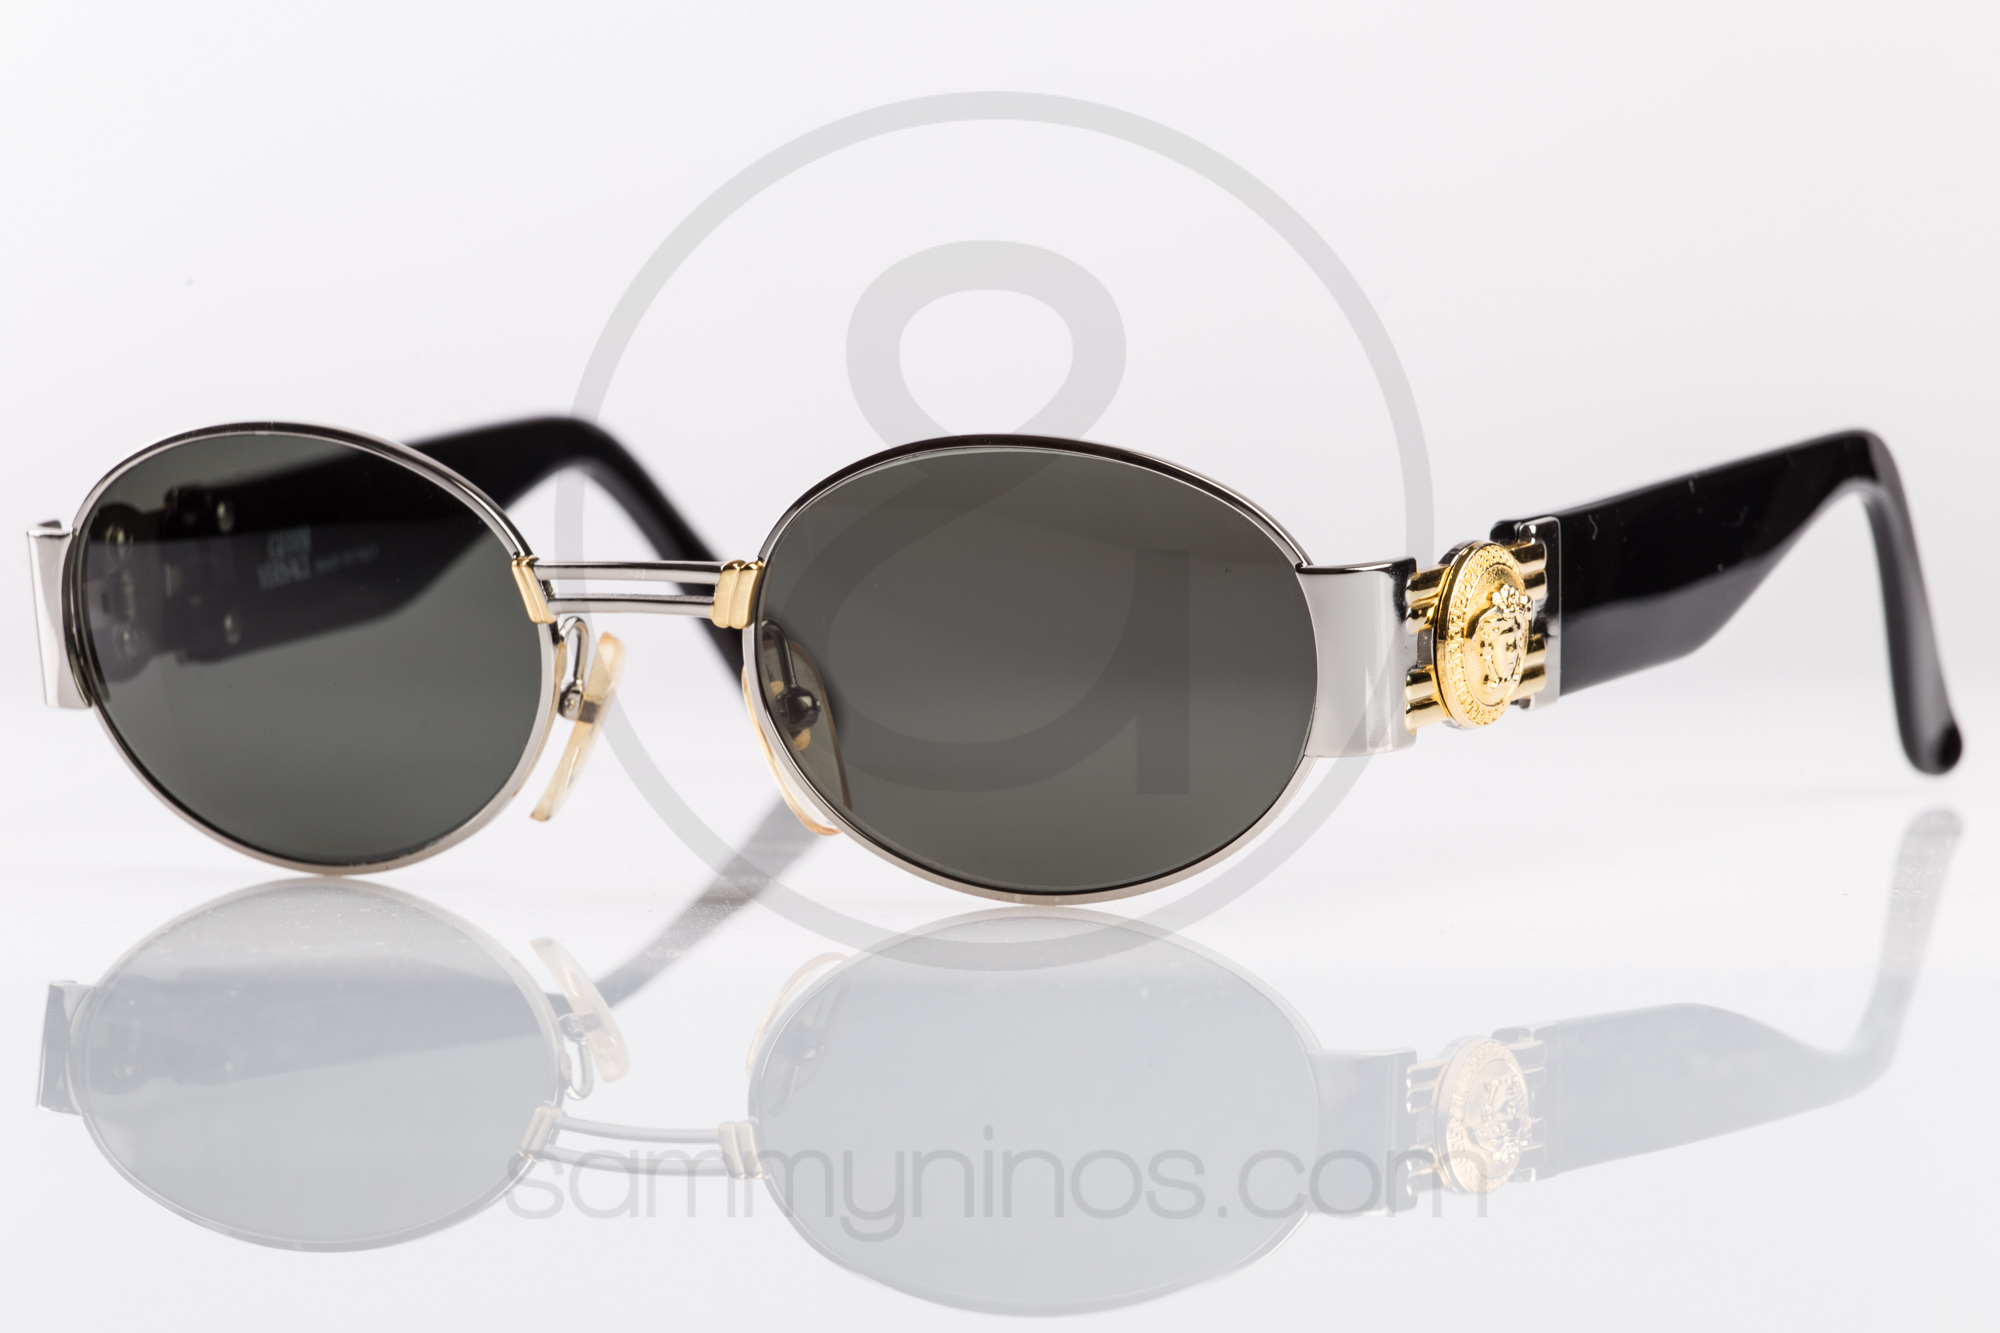 8fbe4a26a4f Gianni Versace S71 15L